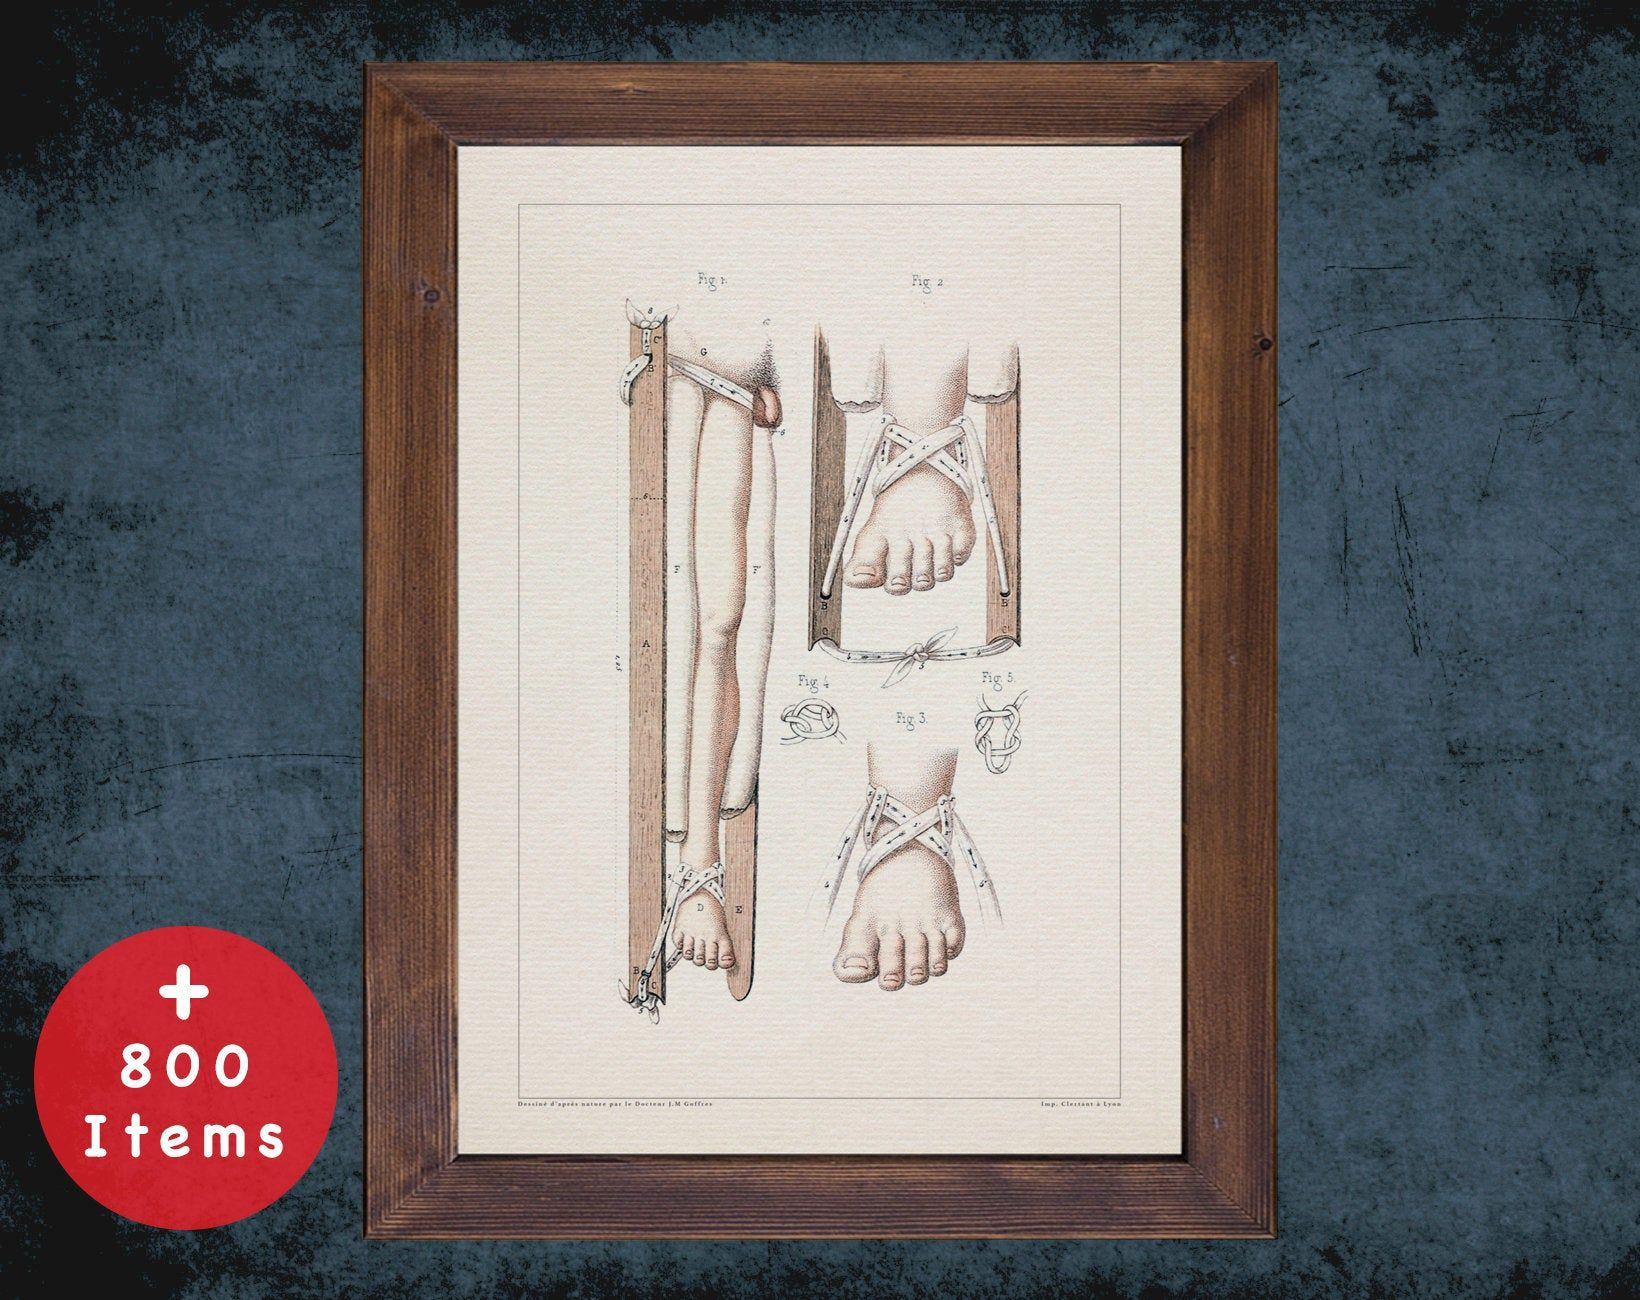 ANKLE FOOT ORTHOSIS anatomy art print for medical student gift, Nurse and Nursing doctor office decor #medicalstudents